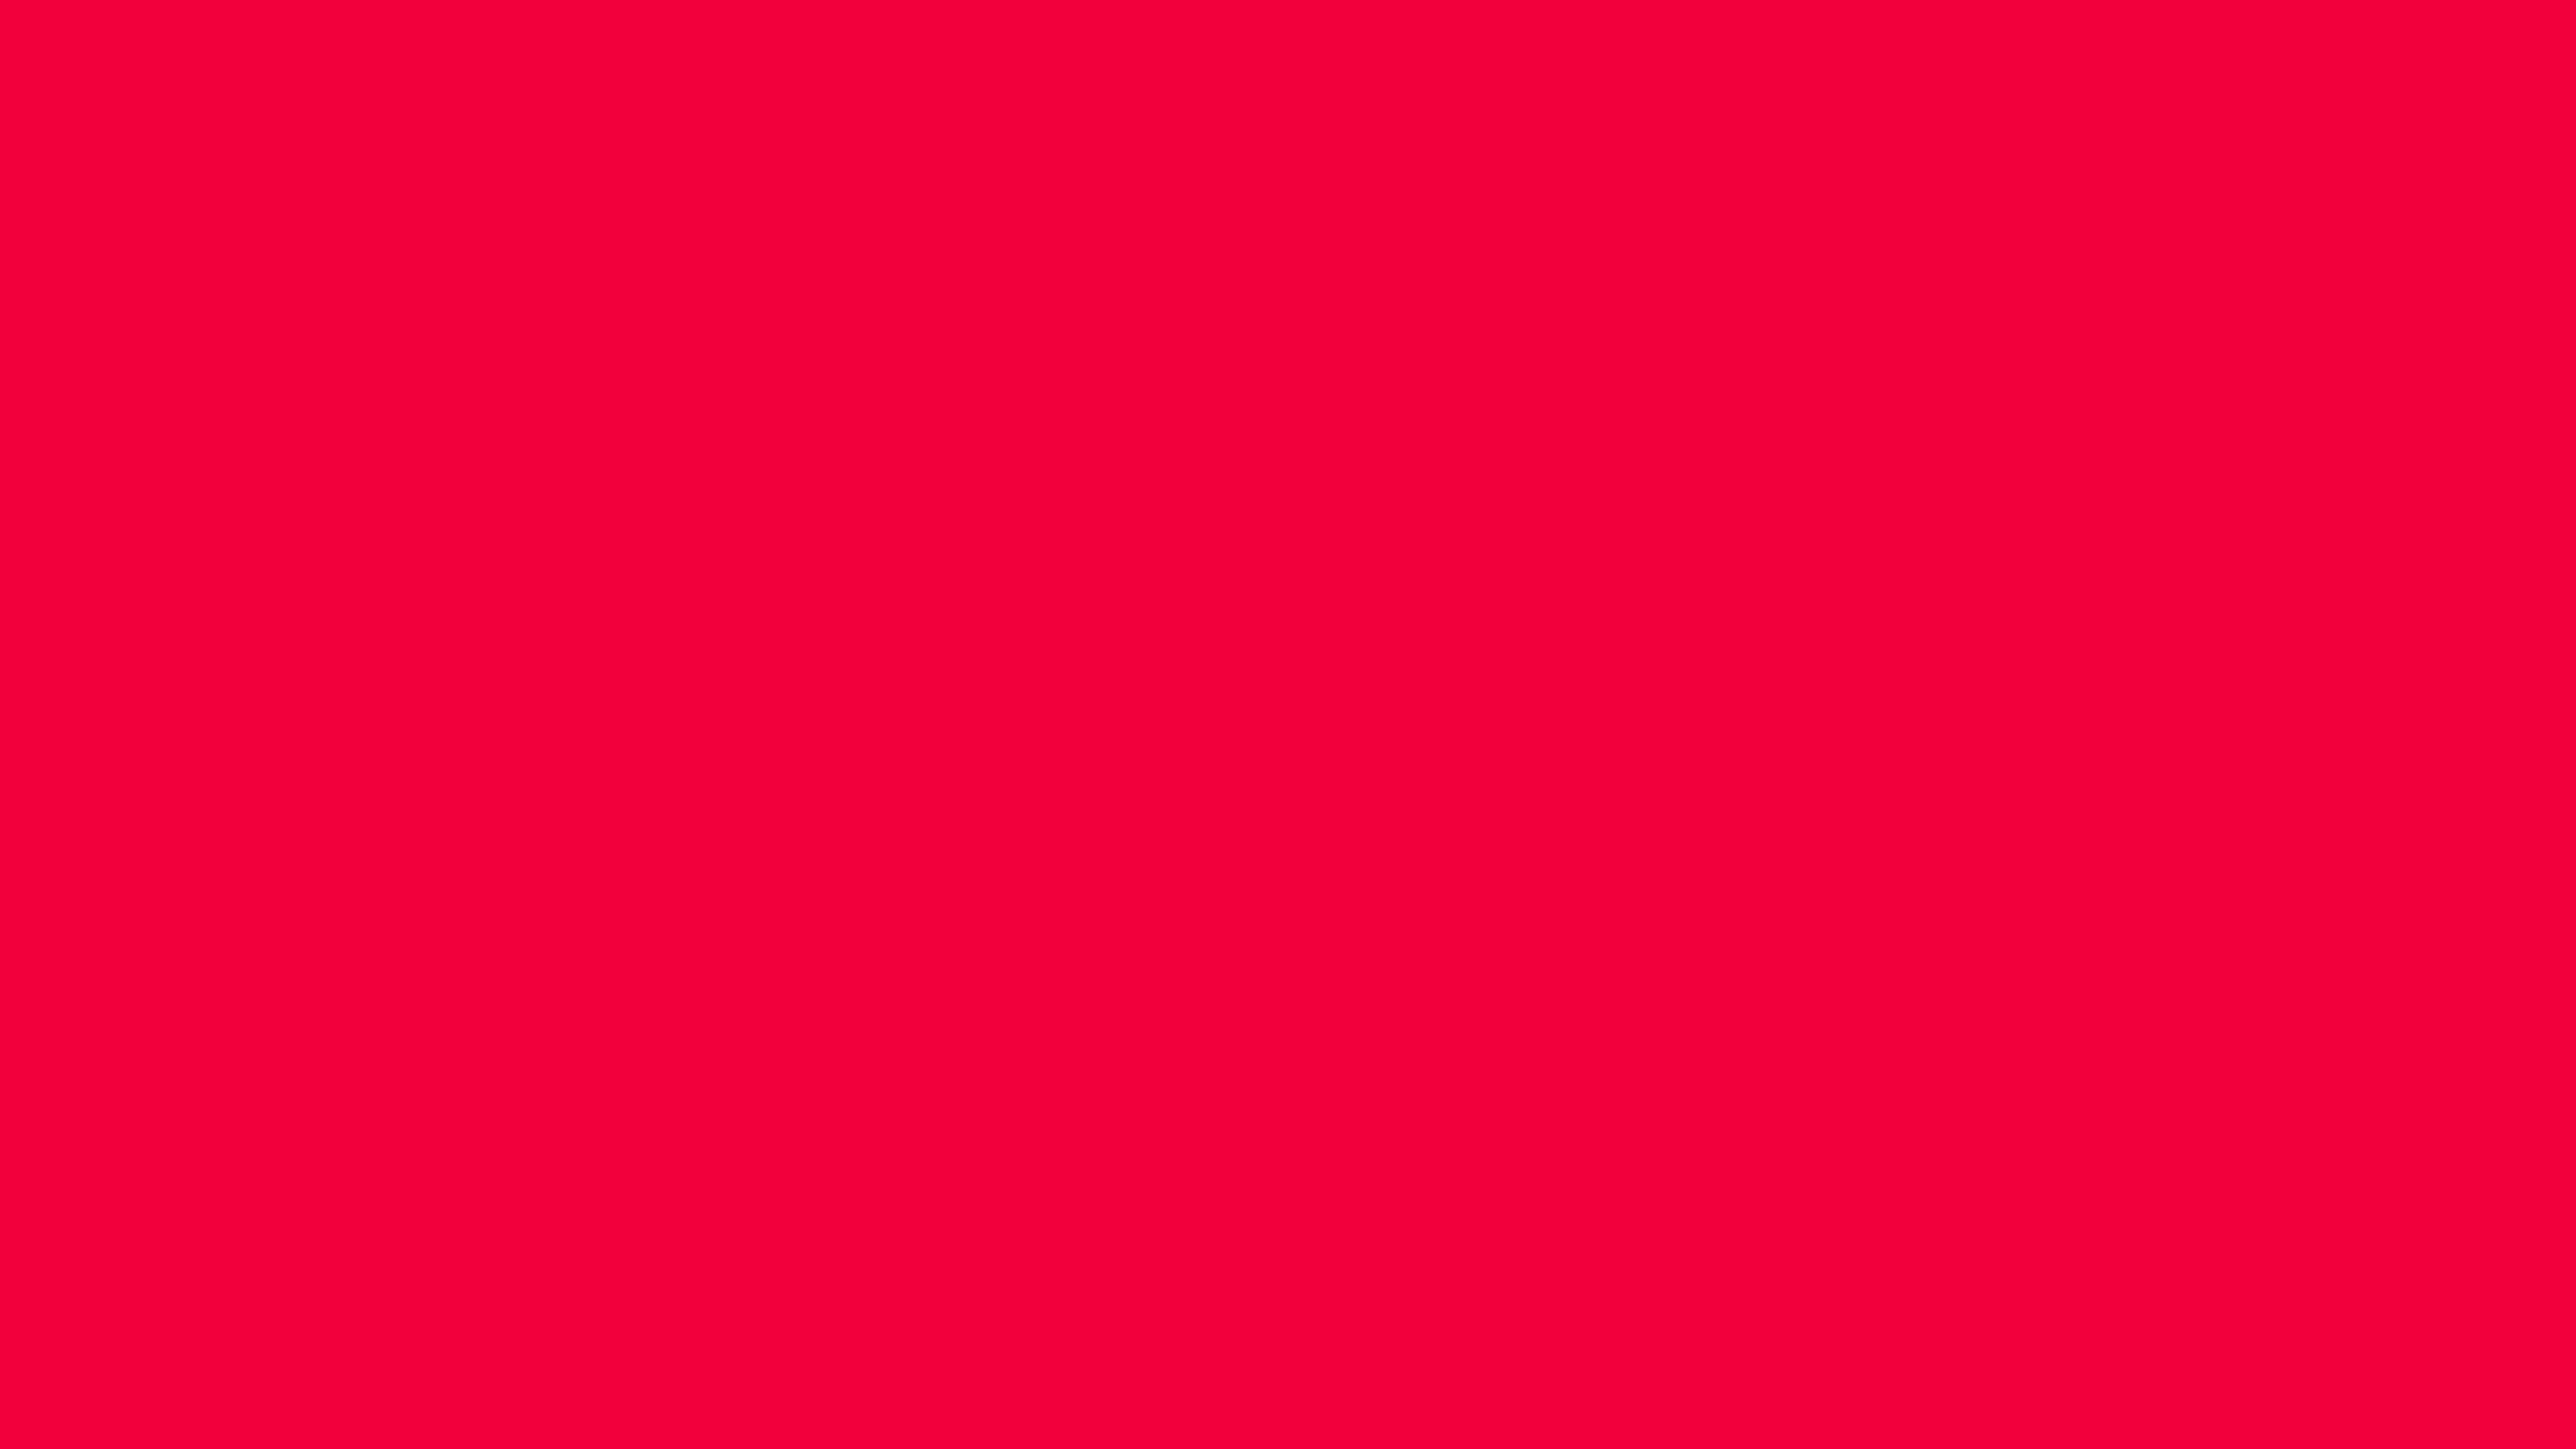 5120x2880 Red Munsell Solid Color Background